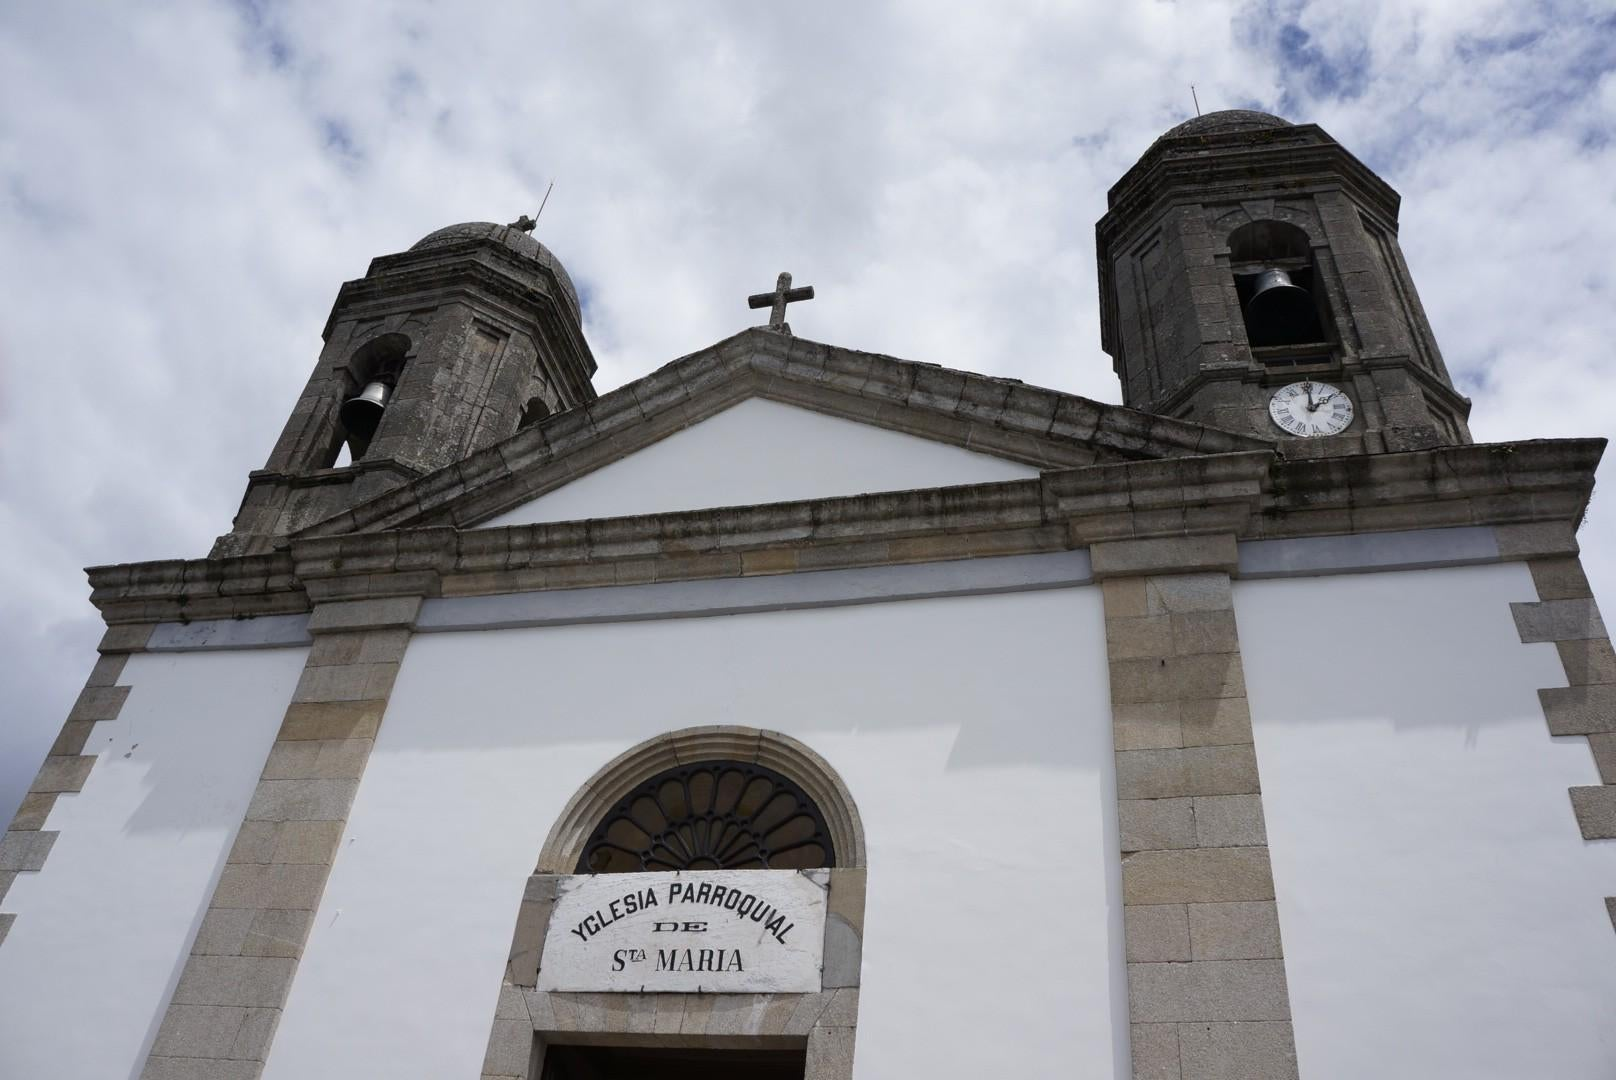 Santa María Parish Church